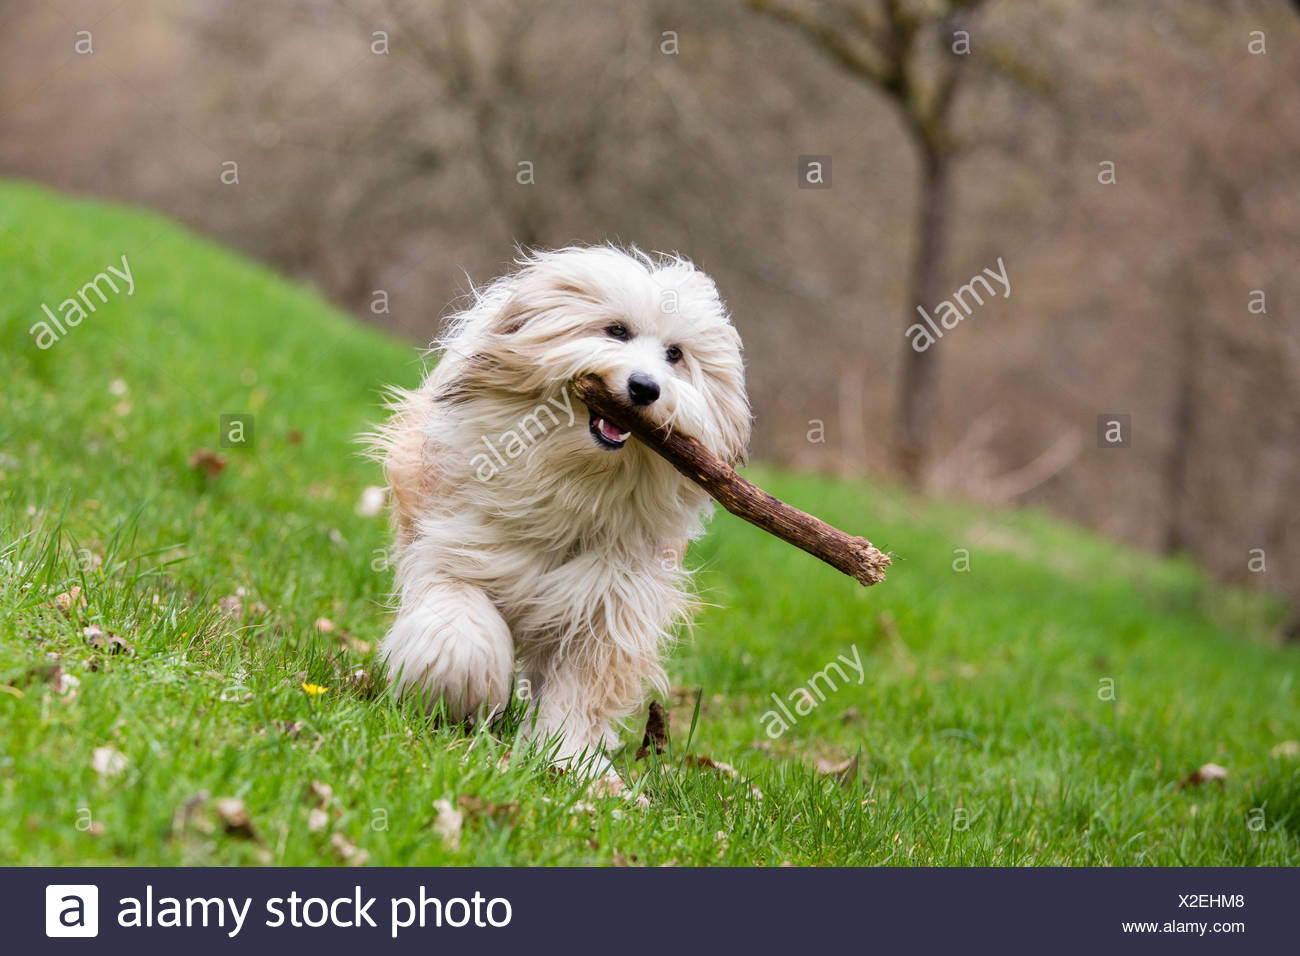 Tibetan Terrier, Tsang Apso, Dokhi Apso (Canis lupus f. familiaris), ten month old bright sable and white male running over a meadow with a stick in its mouth, Germany - Stock Image